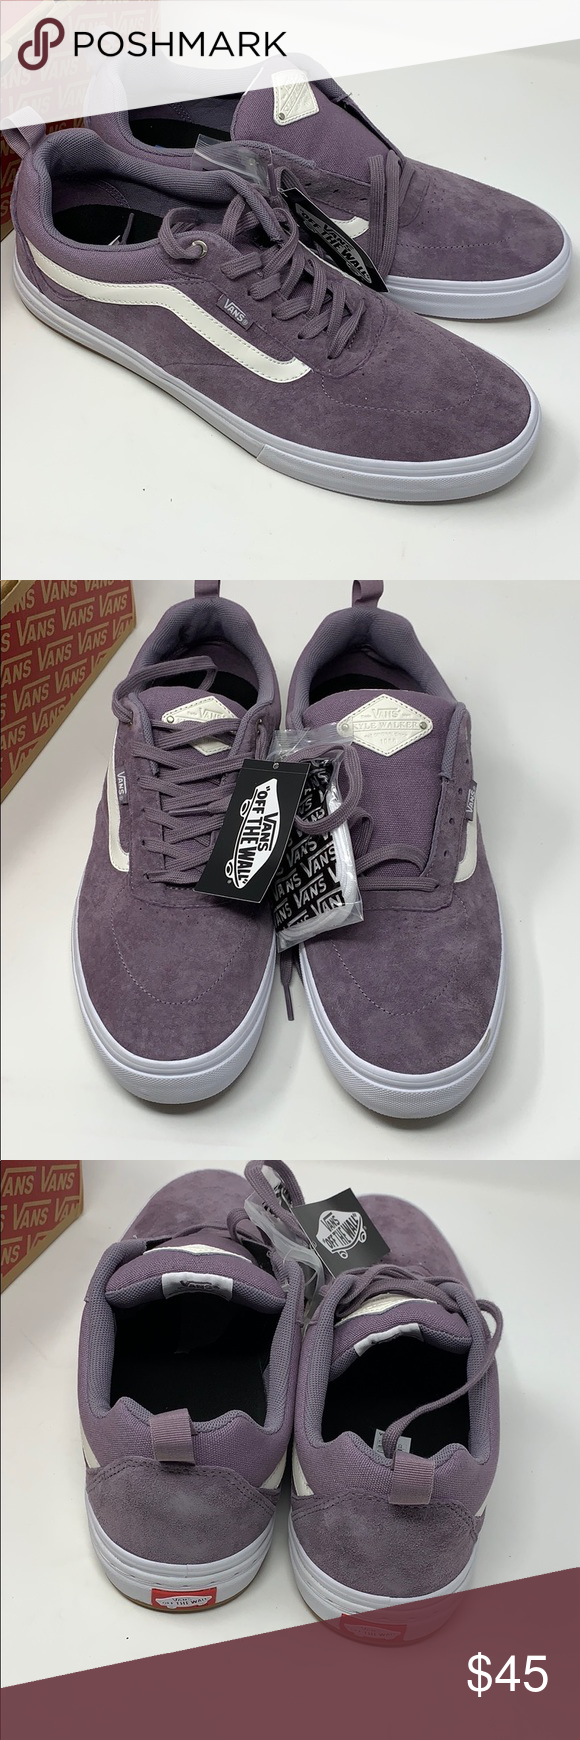 6c079db19e VANS Kyle Walker Pro P purple dawn shoes Size 13 New in box Size  13 Men s  Retails   75 Comes with extra laces is white Vans Shoes Sneakers